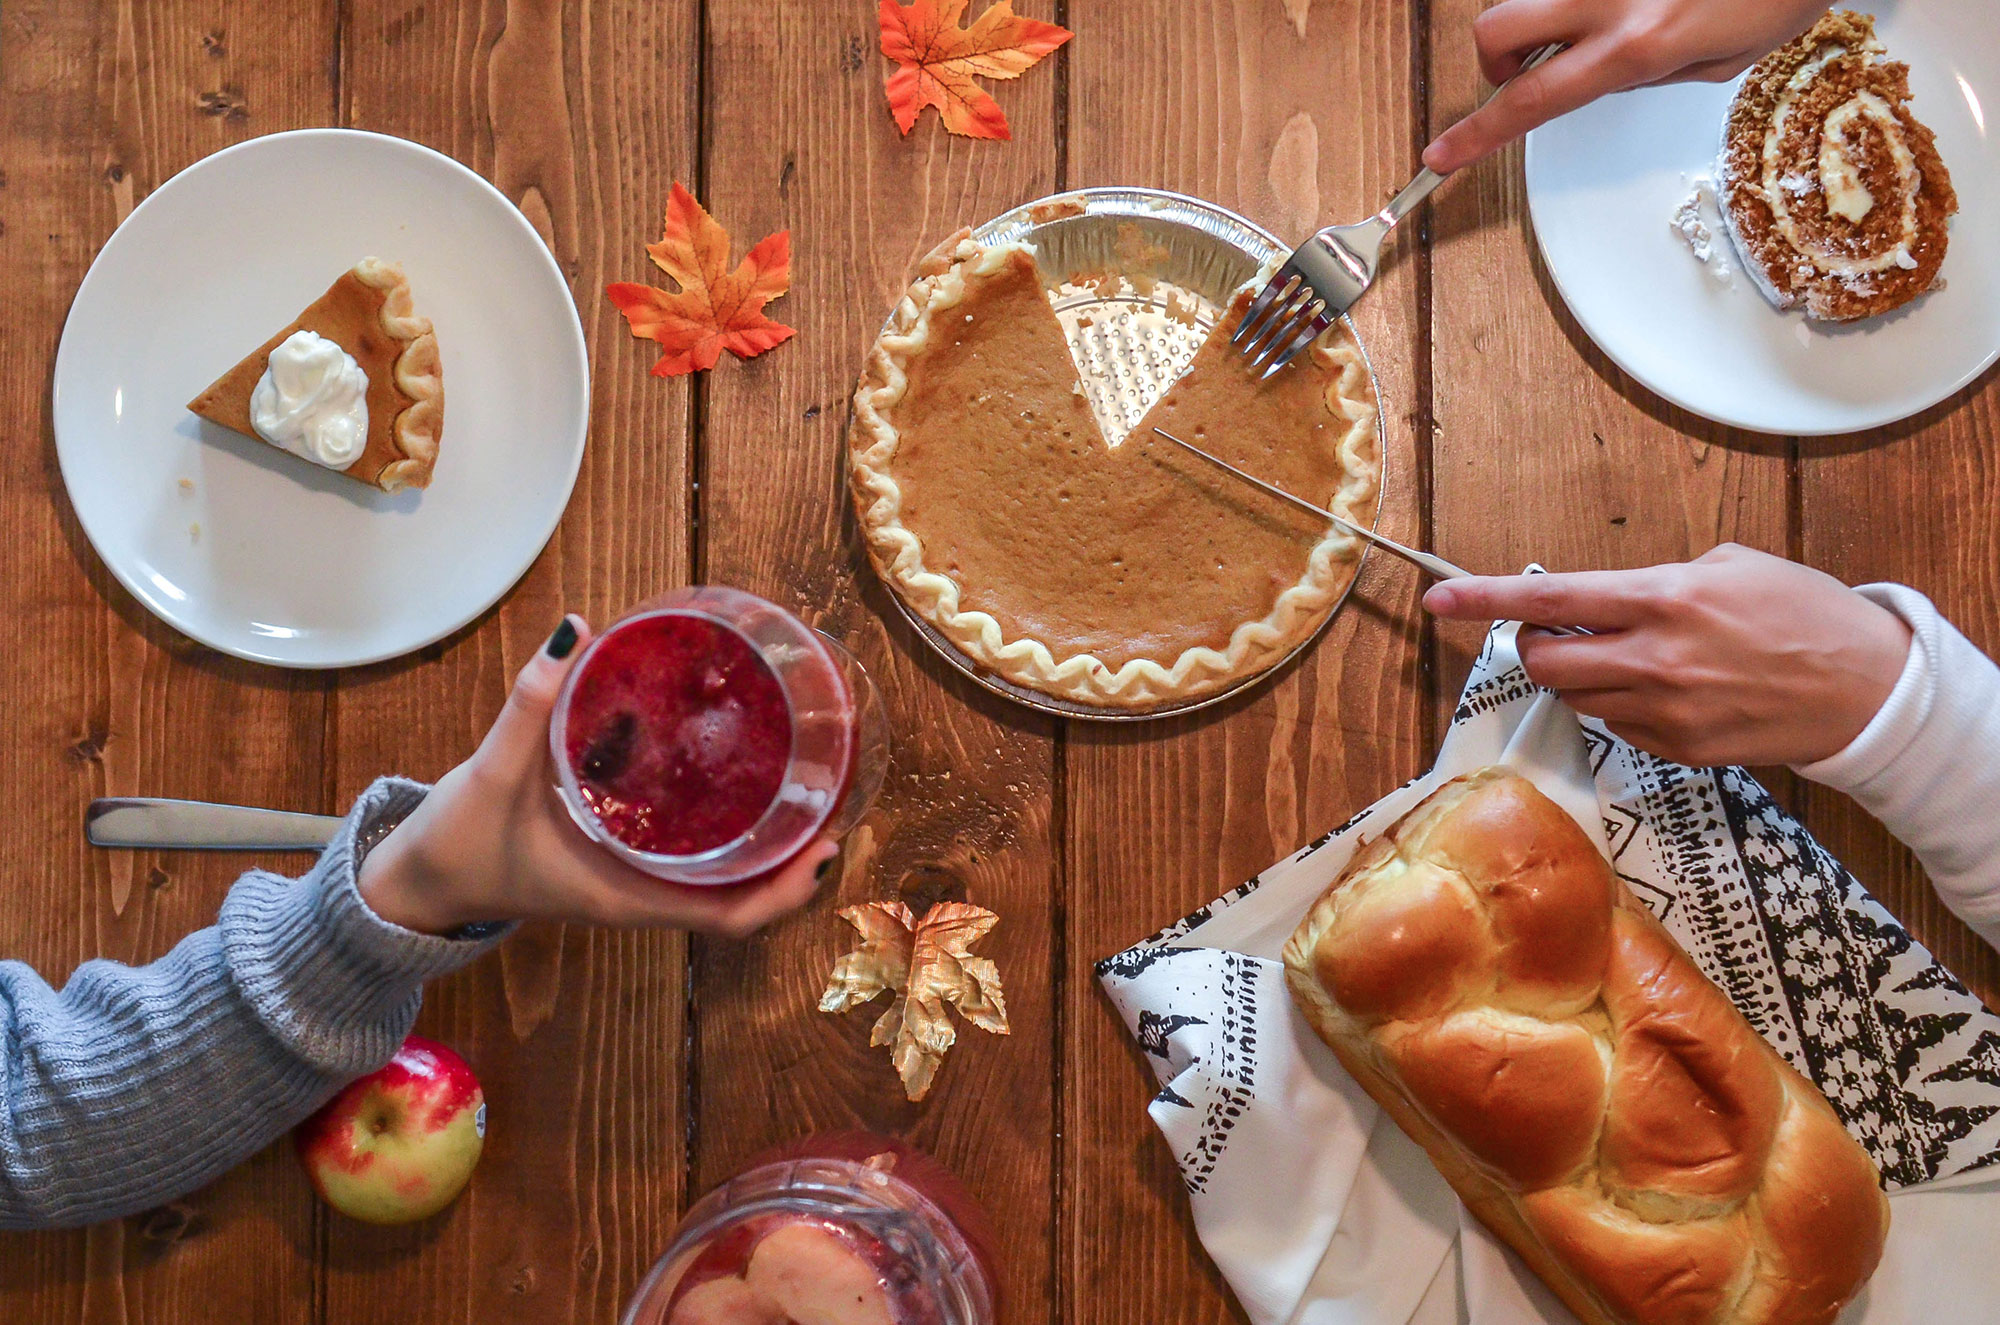 Table with pumpkin pie and bread